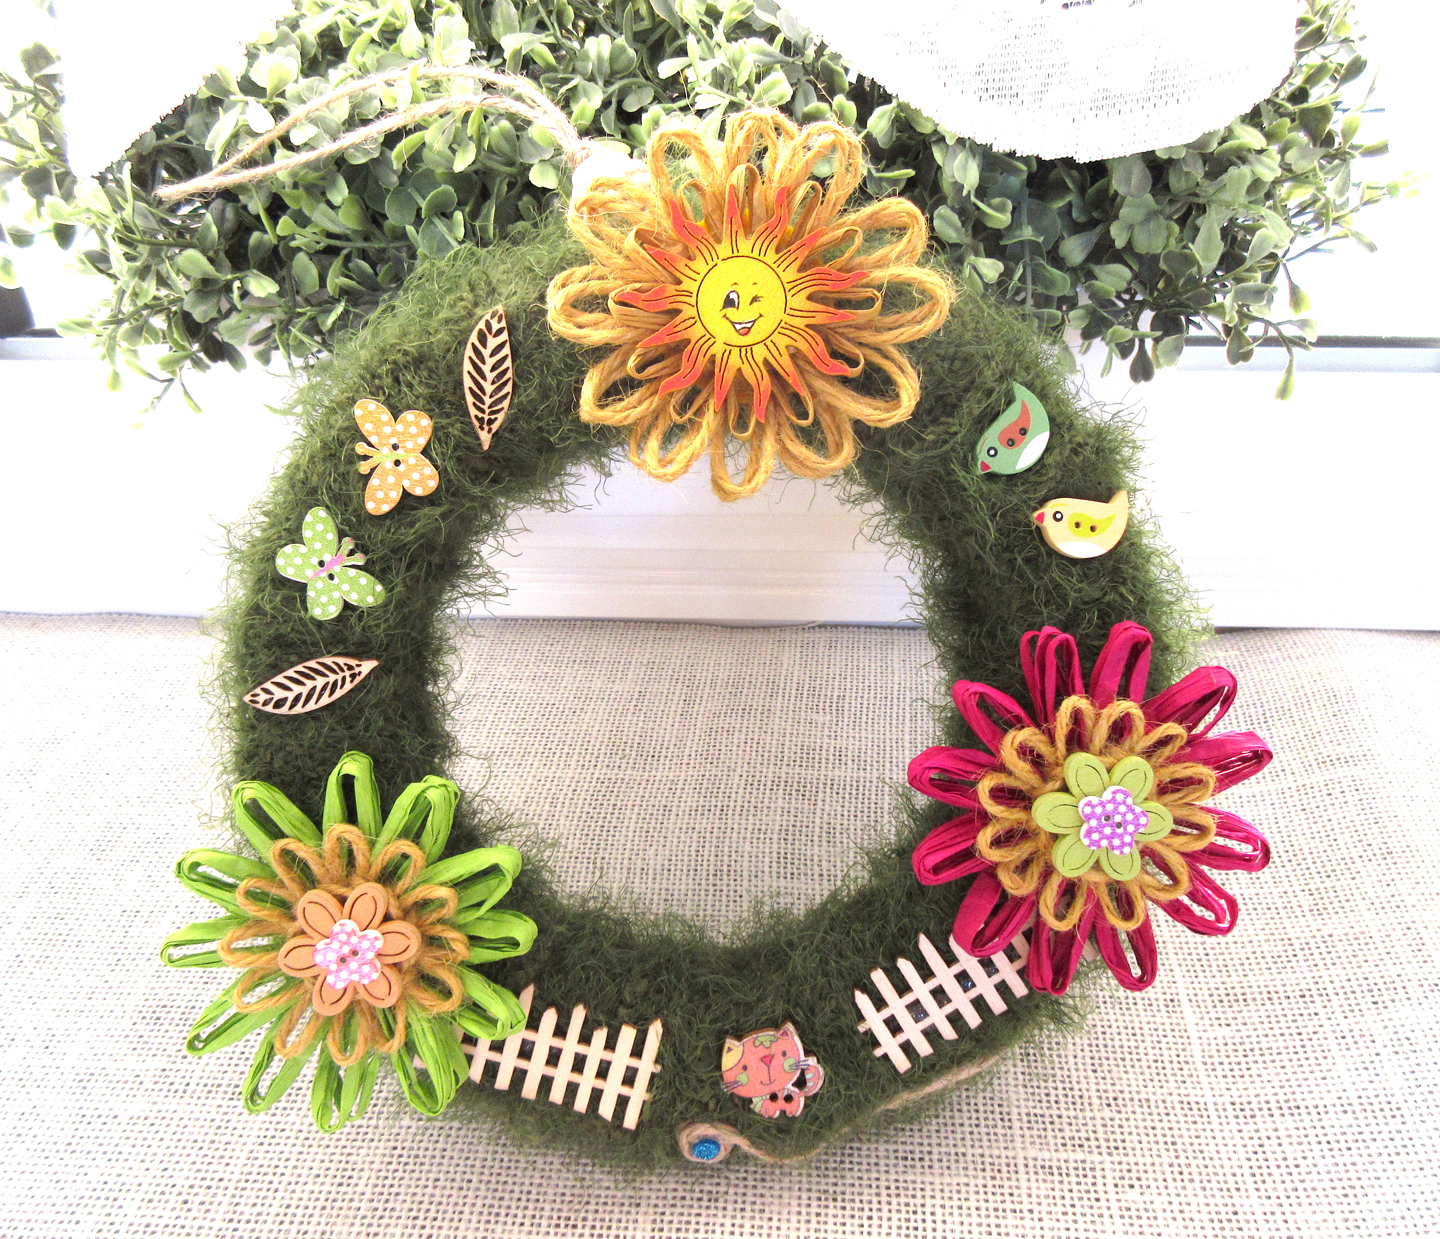 A colourful, happy artificial wreath decorated in paper and twine flowers and cheerful buttons